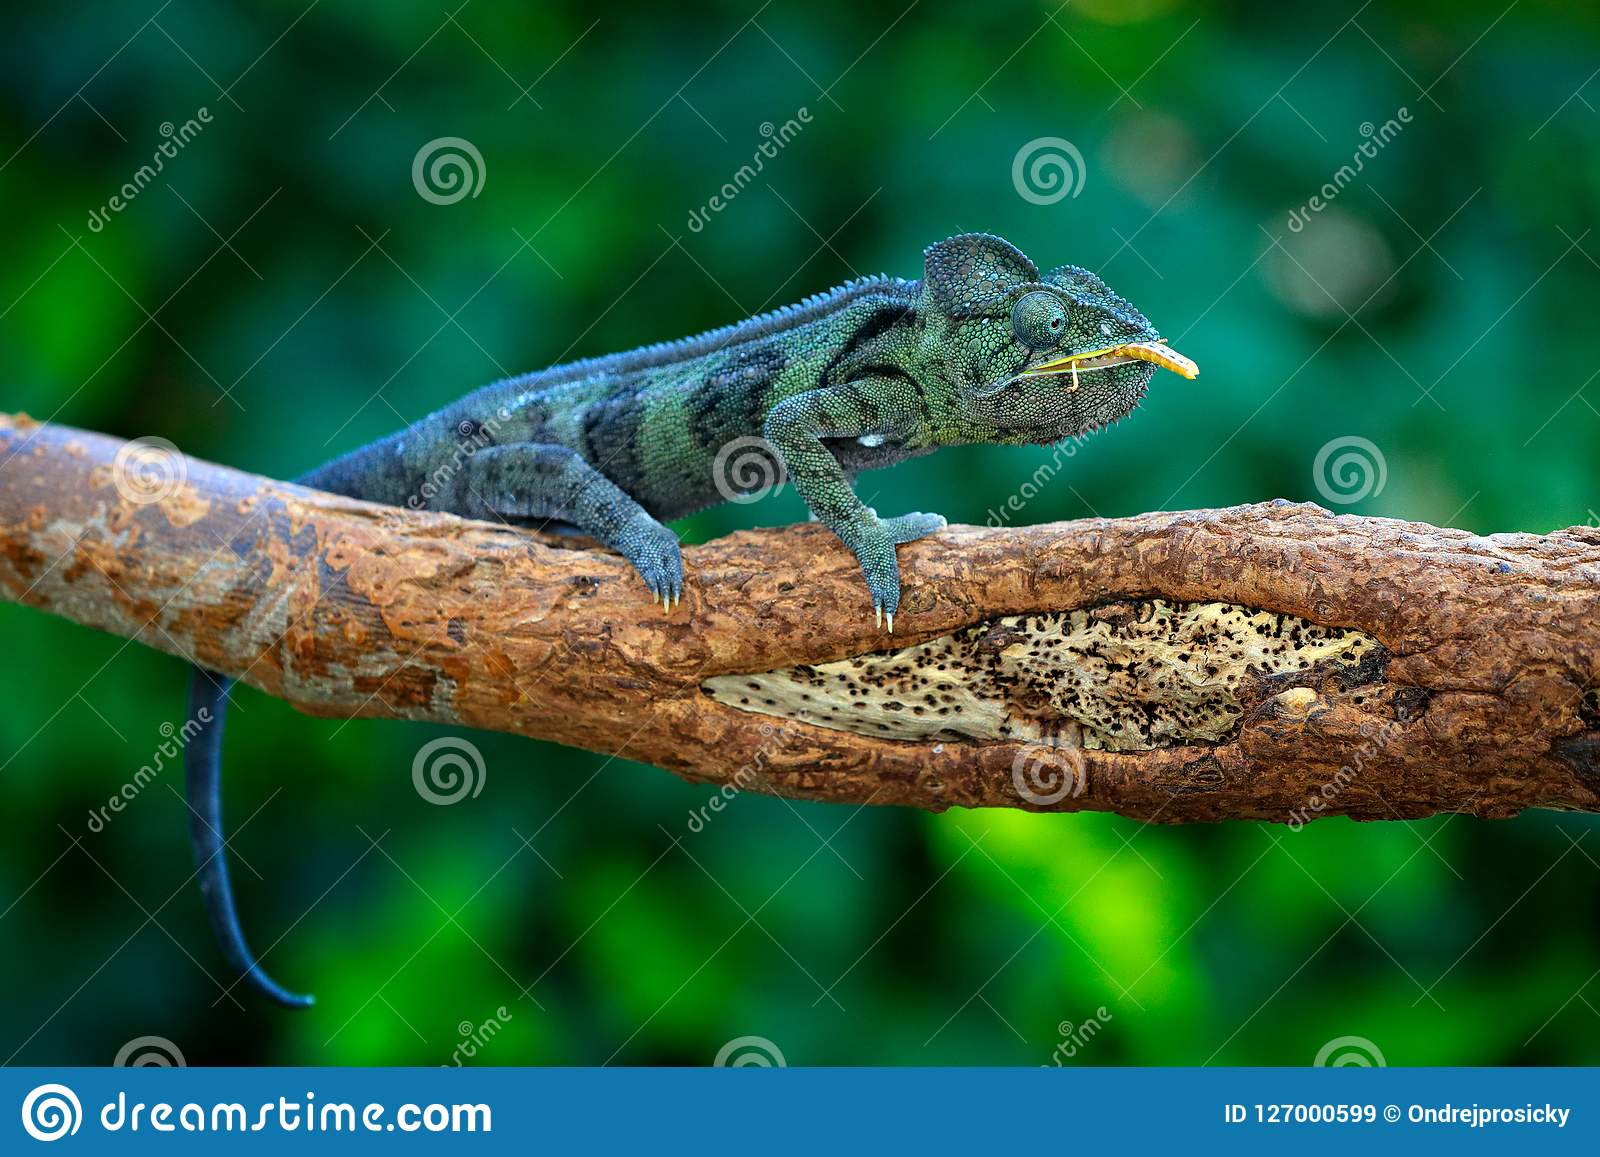 Malagasy giant chameleon, Furcifer oustaleti,sitting on the branch in forest habitat. Exotic beautifull endemic green reptile with